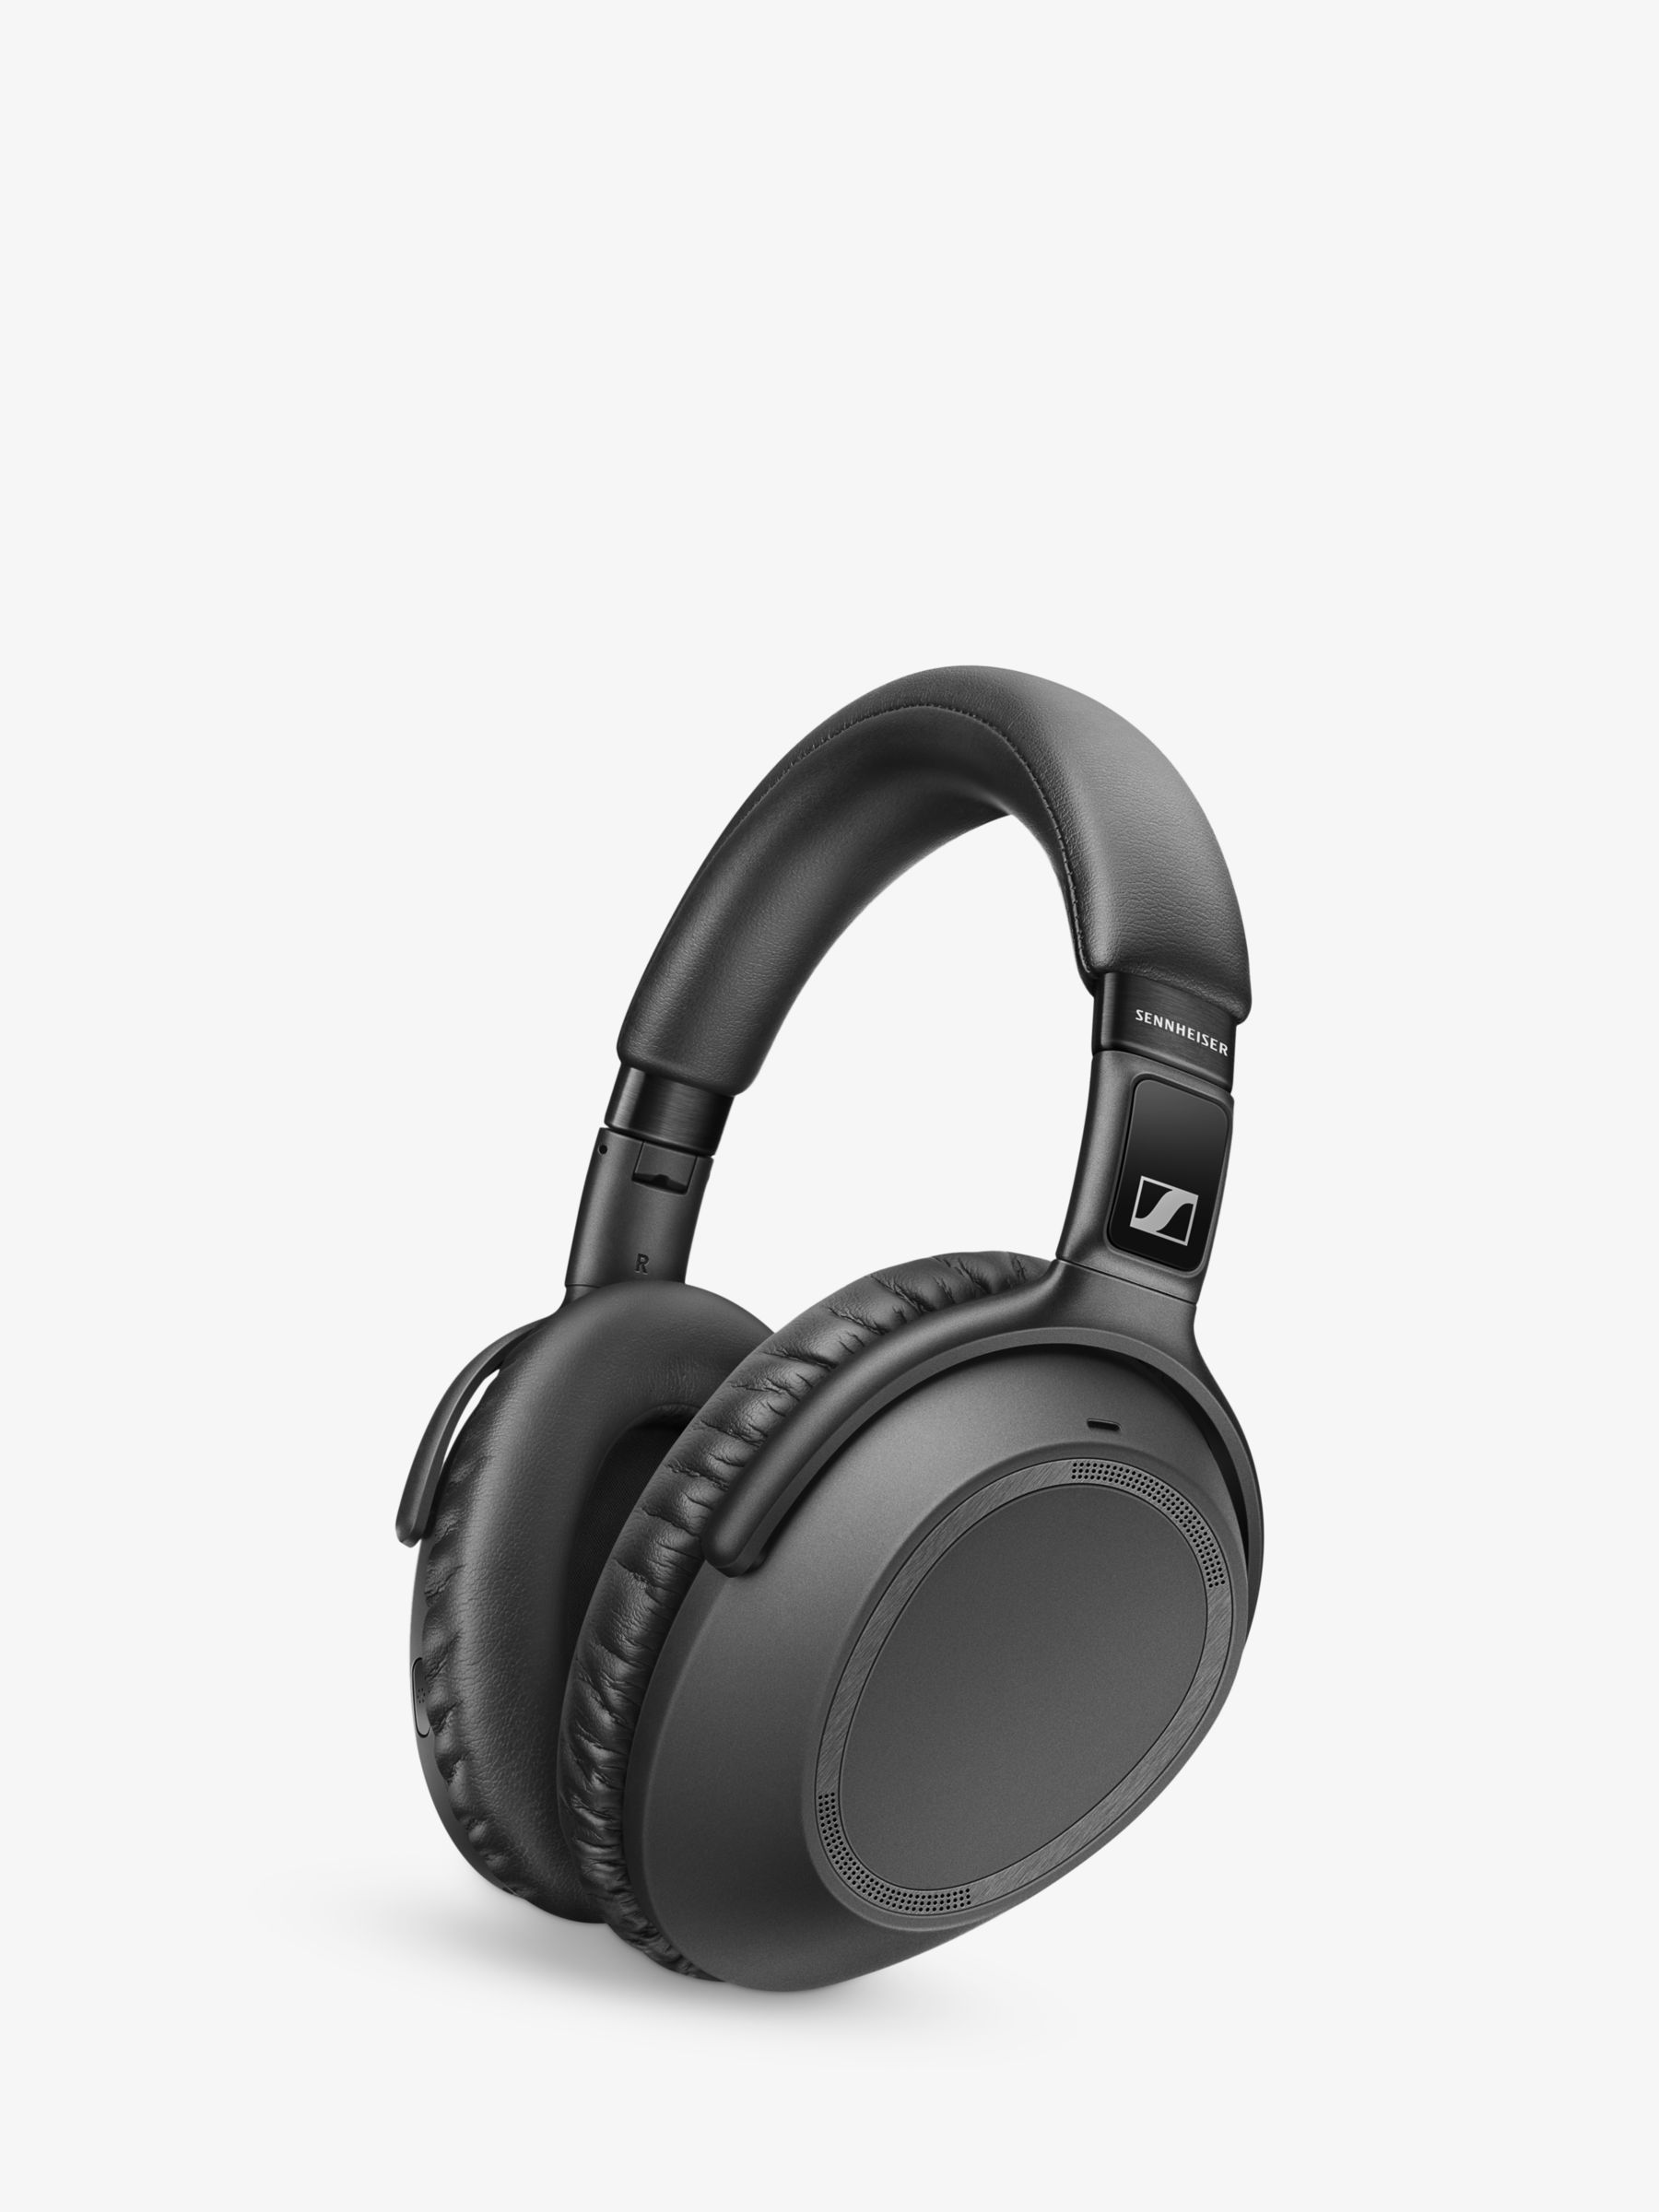 Sennheiser Sennheiser PXC550 II Wireless Bluetooth Noise Cancelling Over-Ear Headphones with Mic/Remote, Black